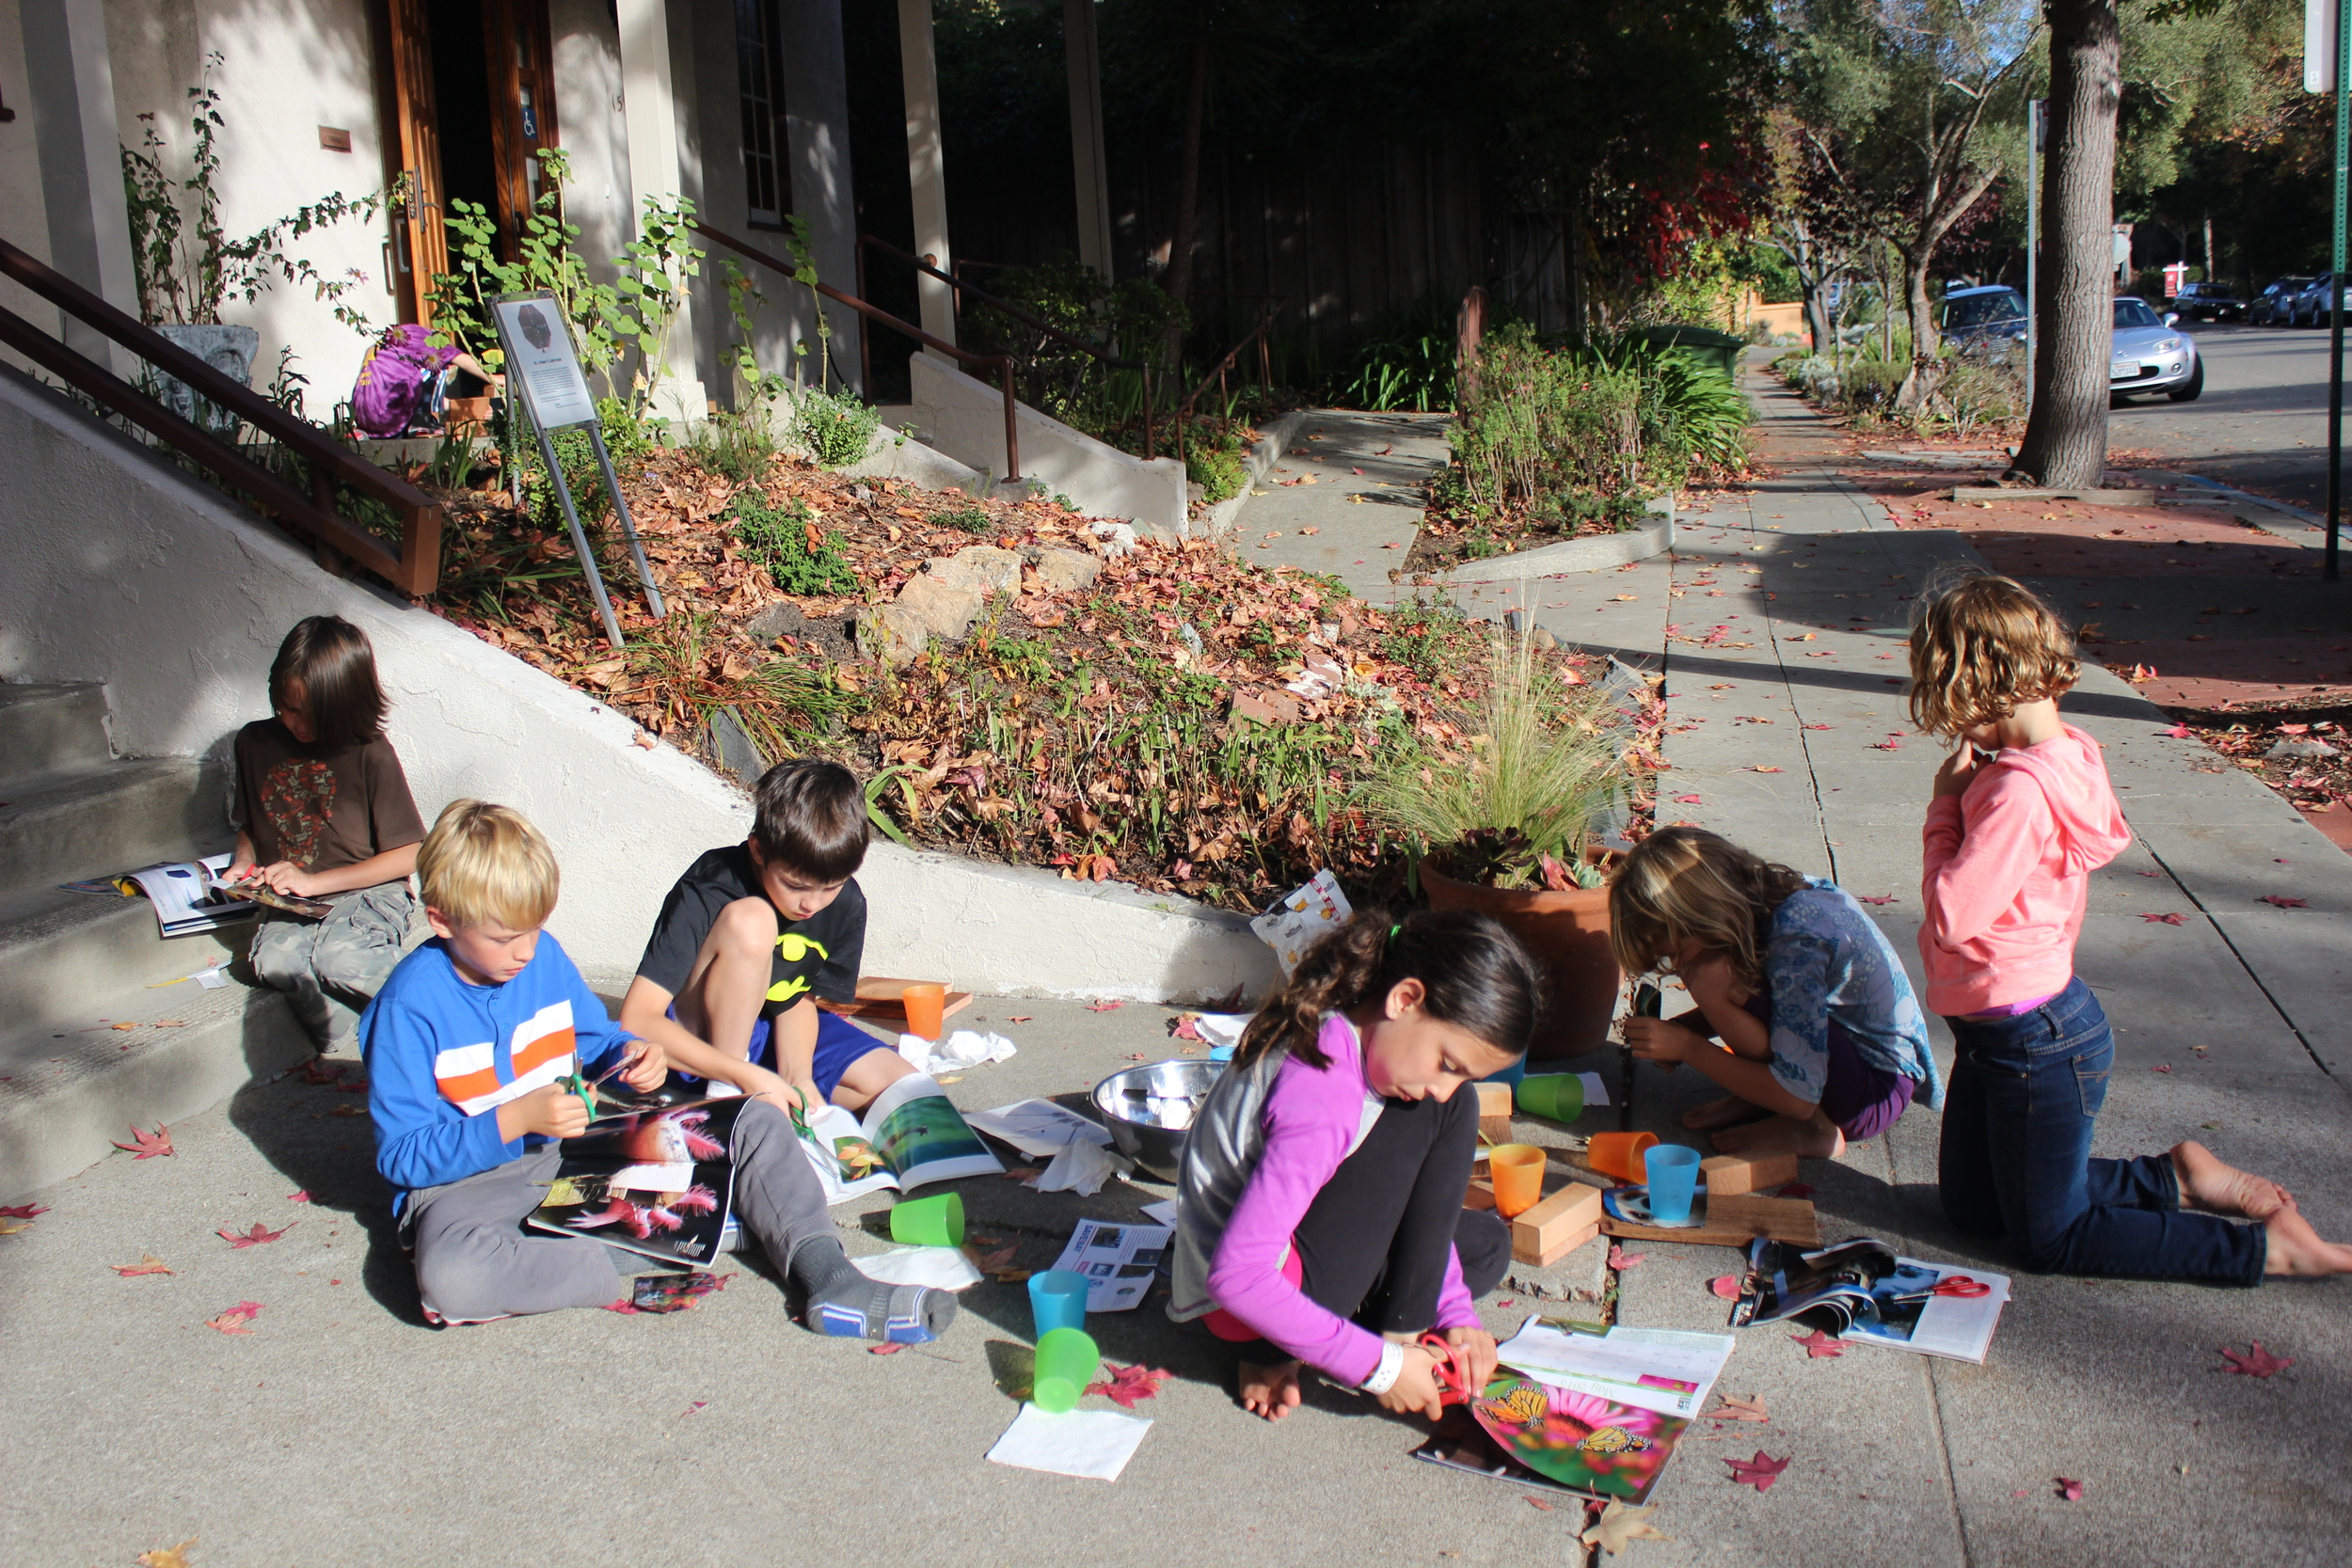 Kids Crafting outside.JPG